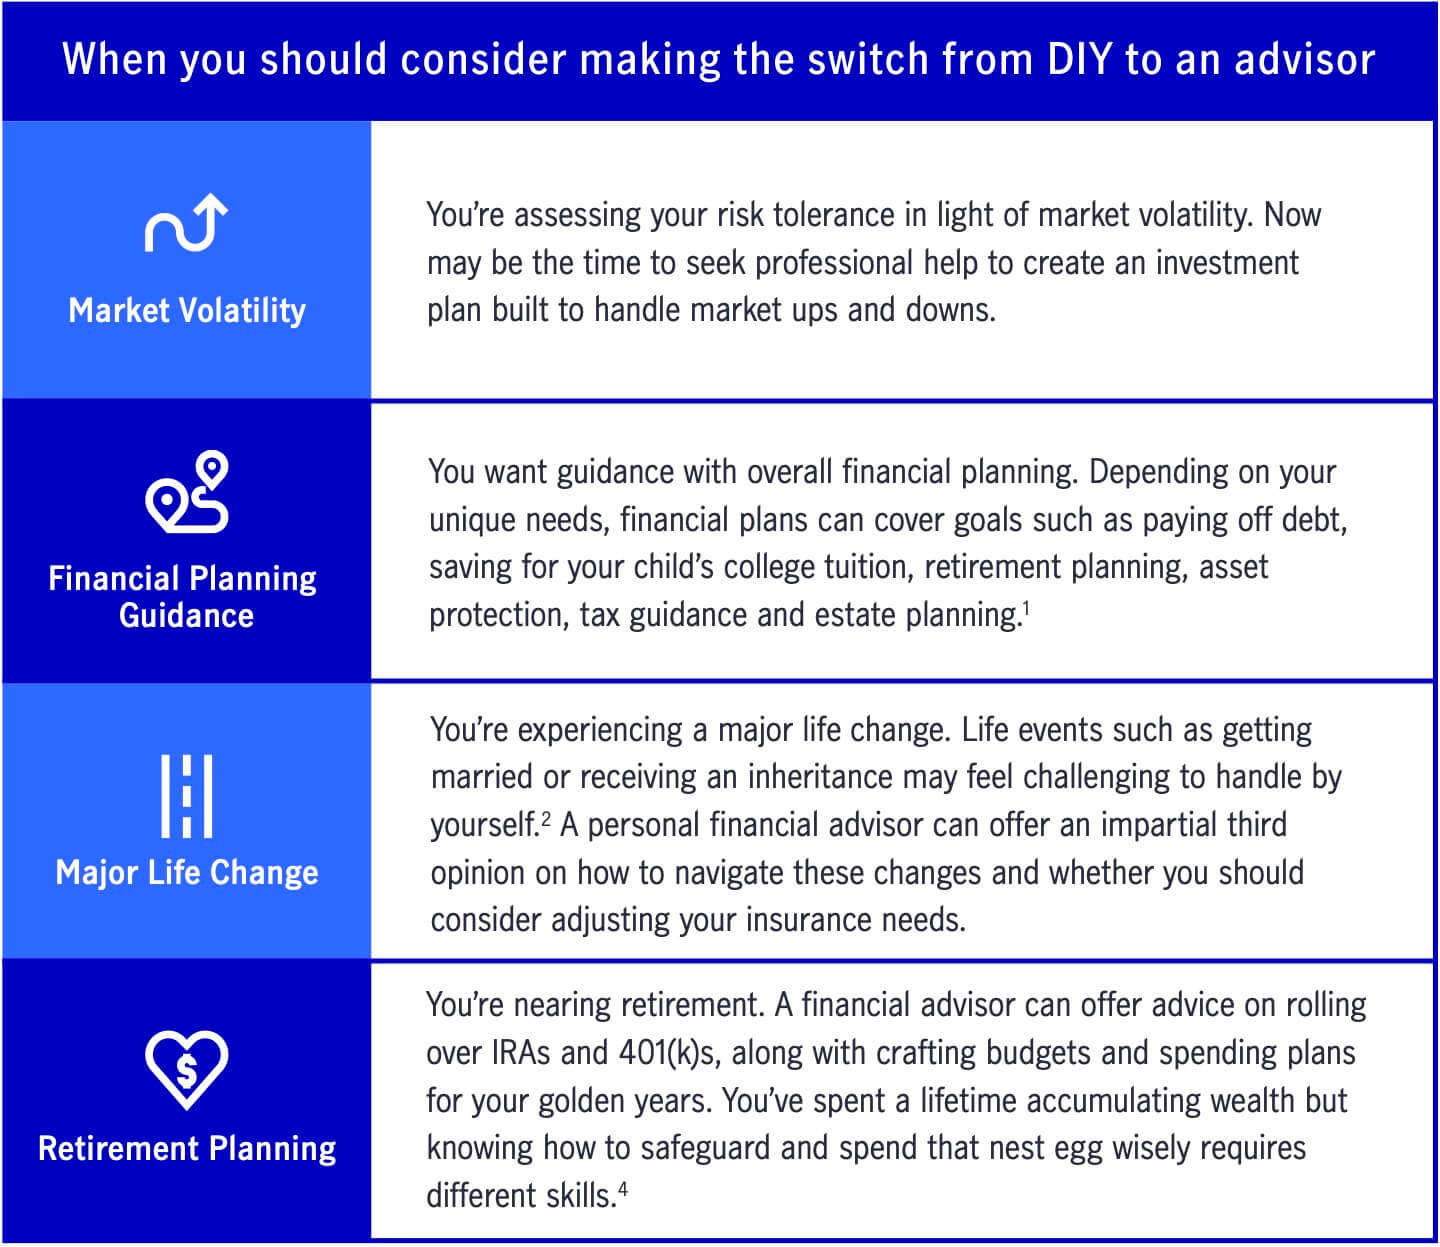 Illustration of when you should switch to an investment advisor